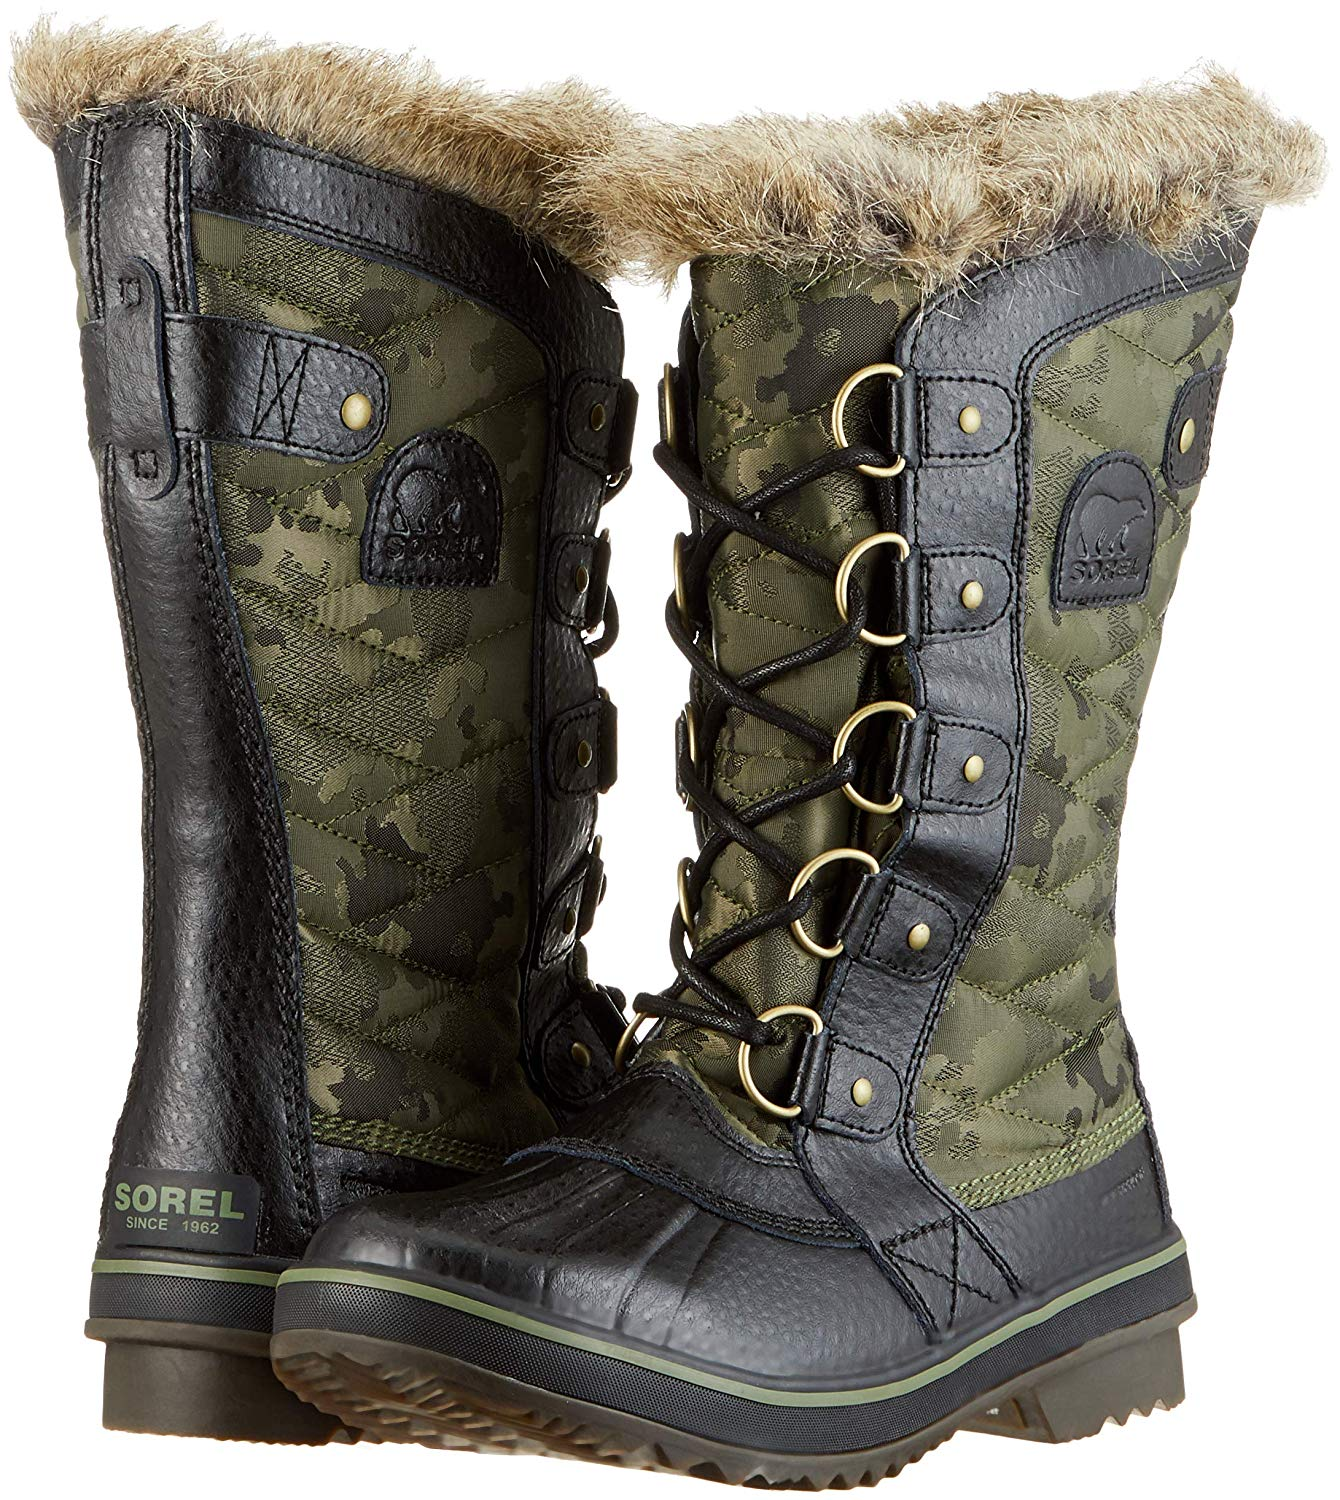 Sorel Tofino Ii Mid Calf Boot Camo-Hiker Green